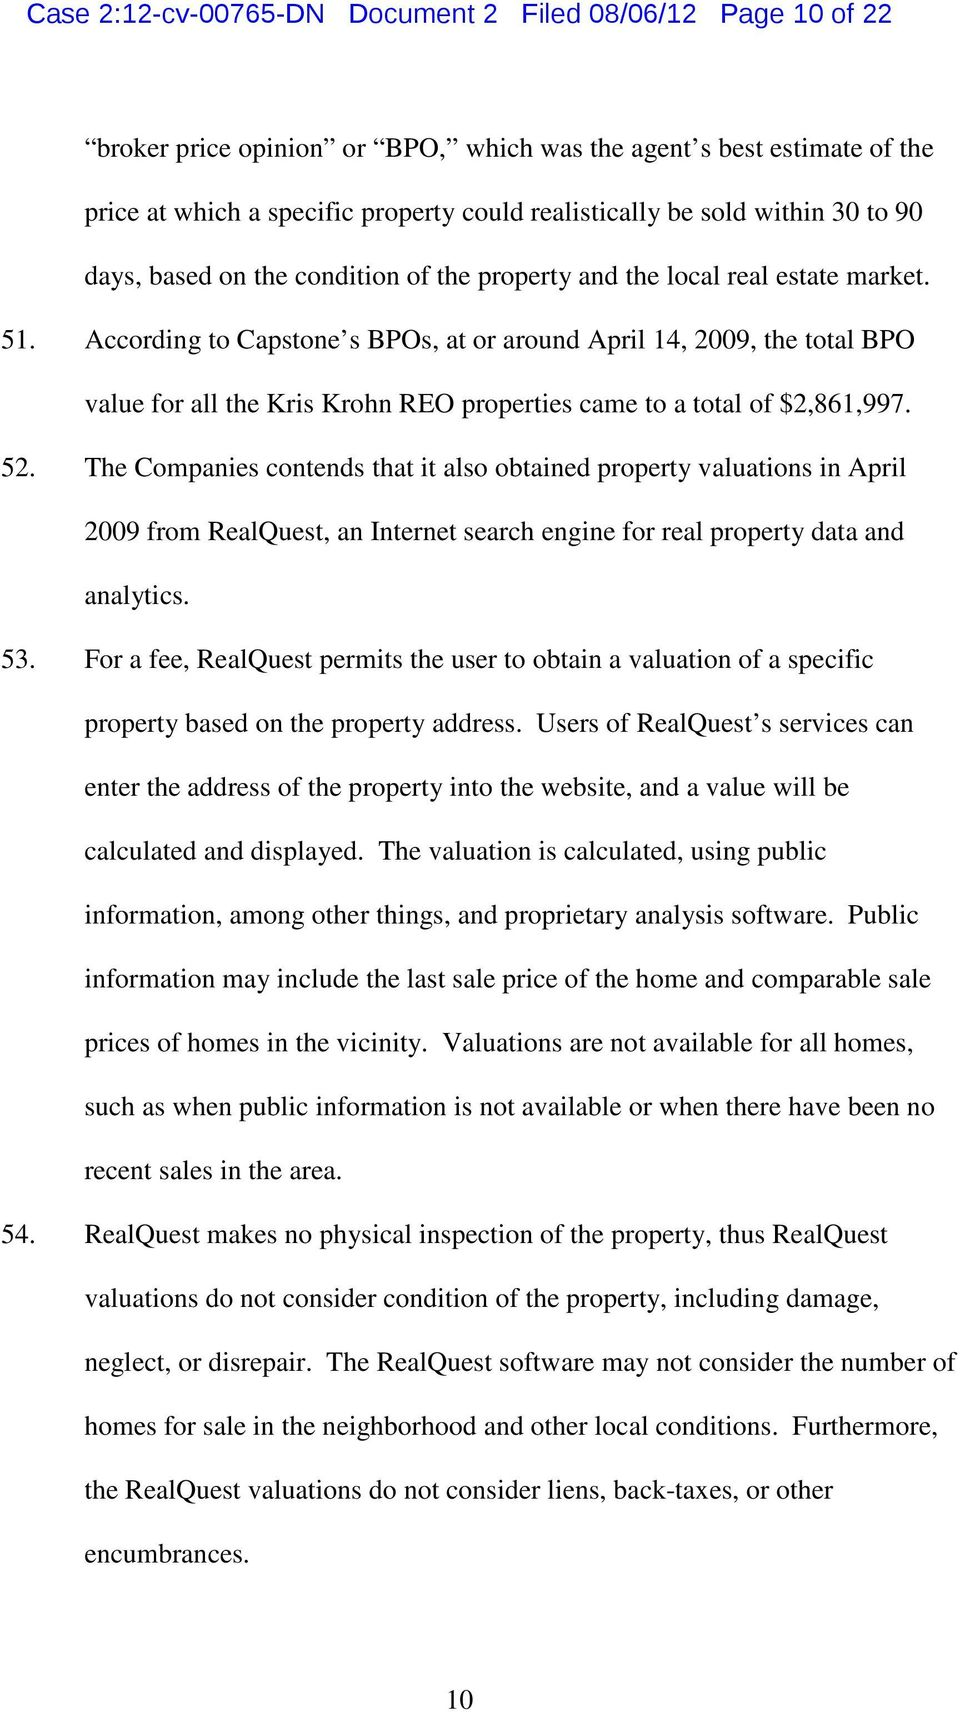 According to Capstone s BPOs, at or around April 14, 2009, the total BPO value for all the Kris Krohn REO properties came to a total of $2,861,997. 52.